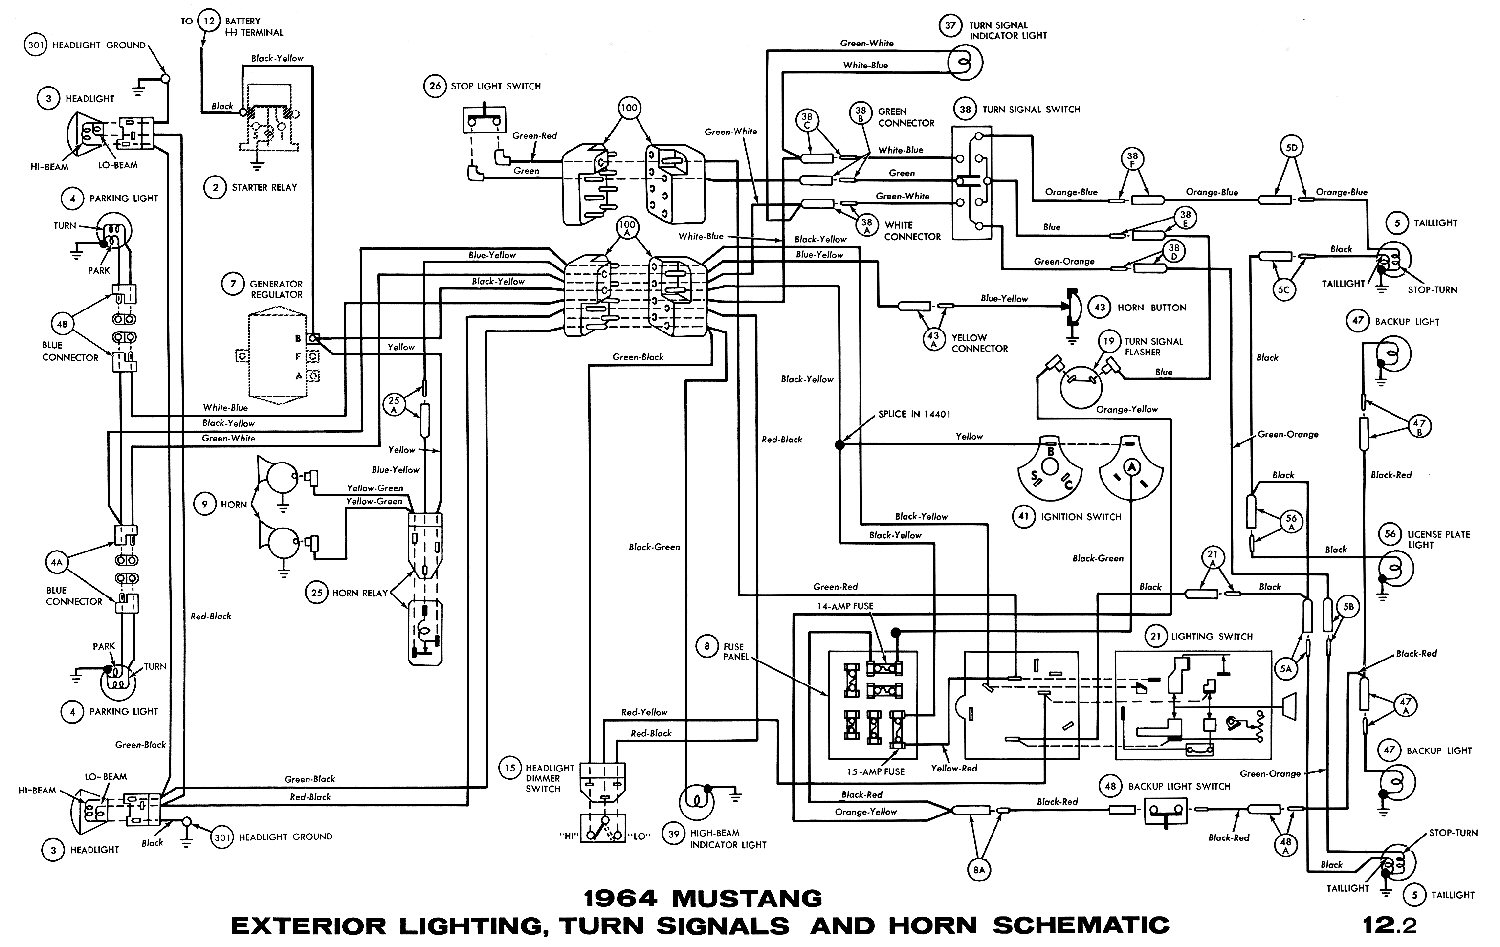 1964i 1964 mustang wiring diagrams average joe restoration 2015 mustang wiring diagram at webbmarketing.co